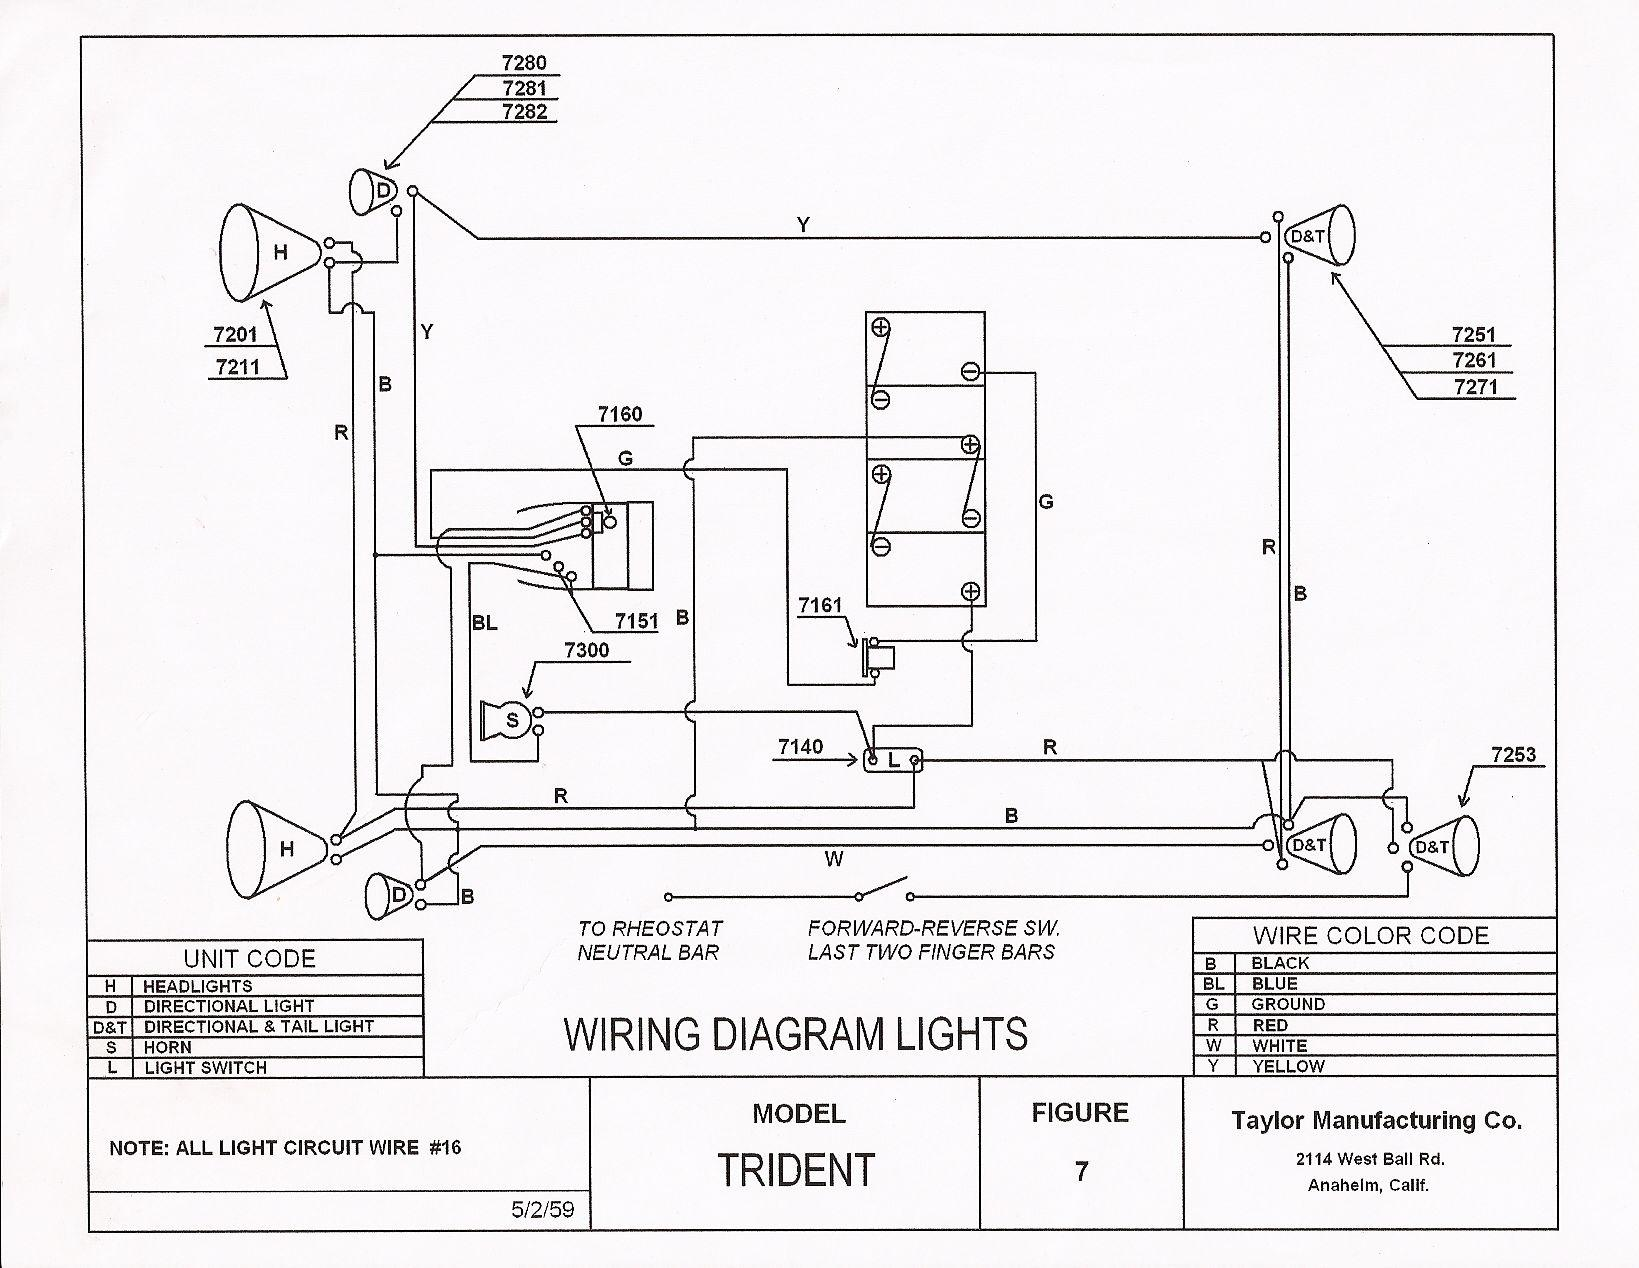 hight resolution of taylor fork lift wiring diagram free download wiring diagram taylor forklift wiring diagram taylor wiring diagram